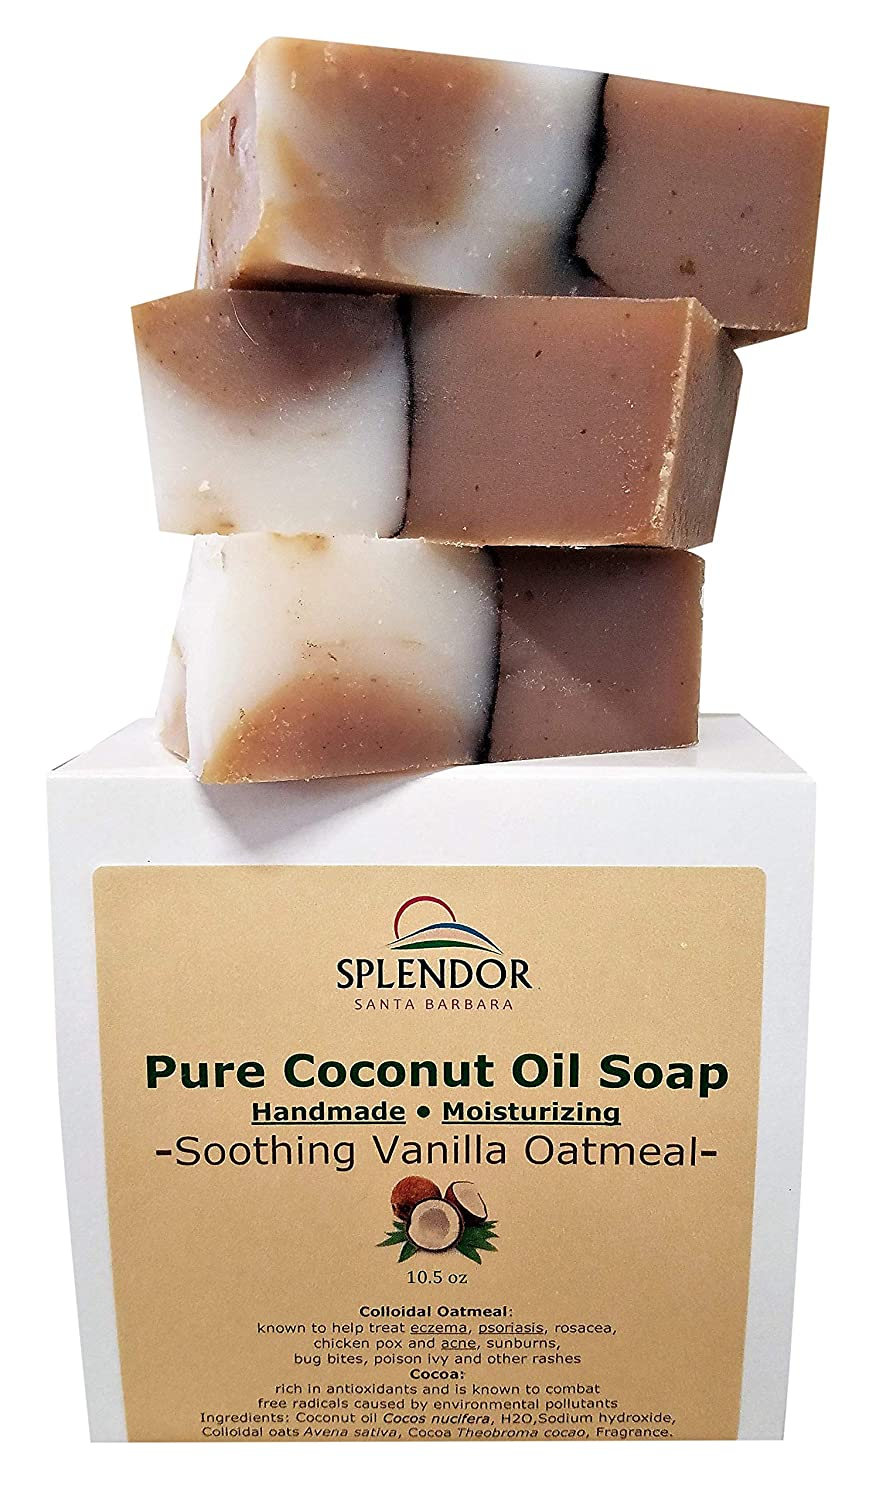 Soothing Vanilla Oatmeal (10.5 oz) - Pure & Natural Coconut Oil Hand, Face & Body Soap. Handmade, Vegan, Moisturizing, with Colloidal Gluten-Free Oats and Antioxidant-Rich Cocoa.